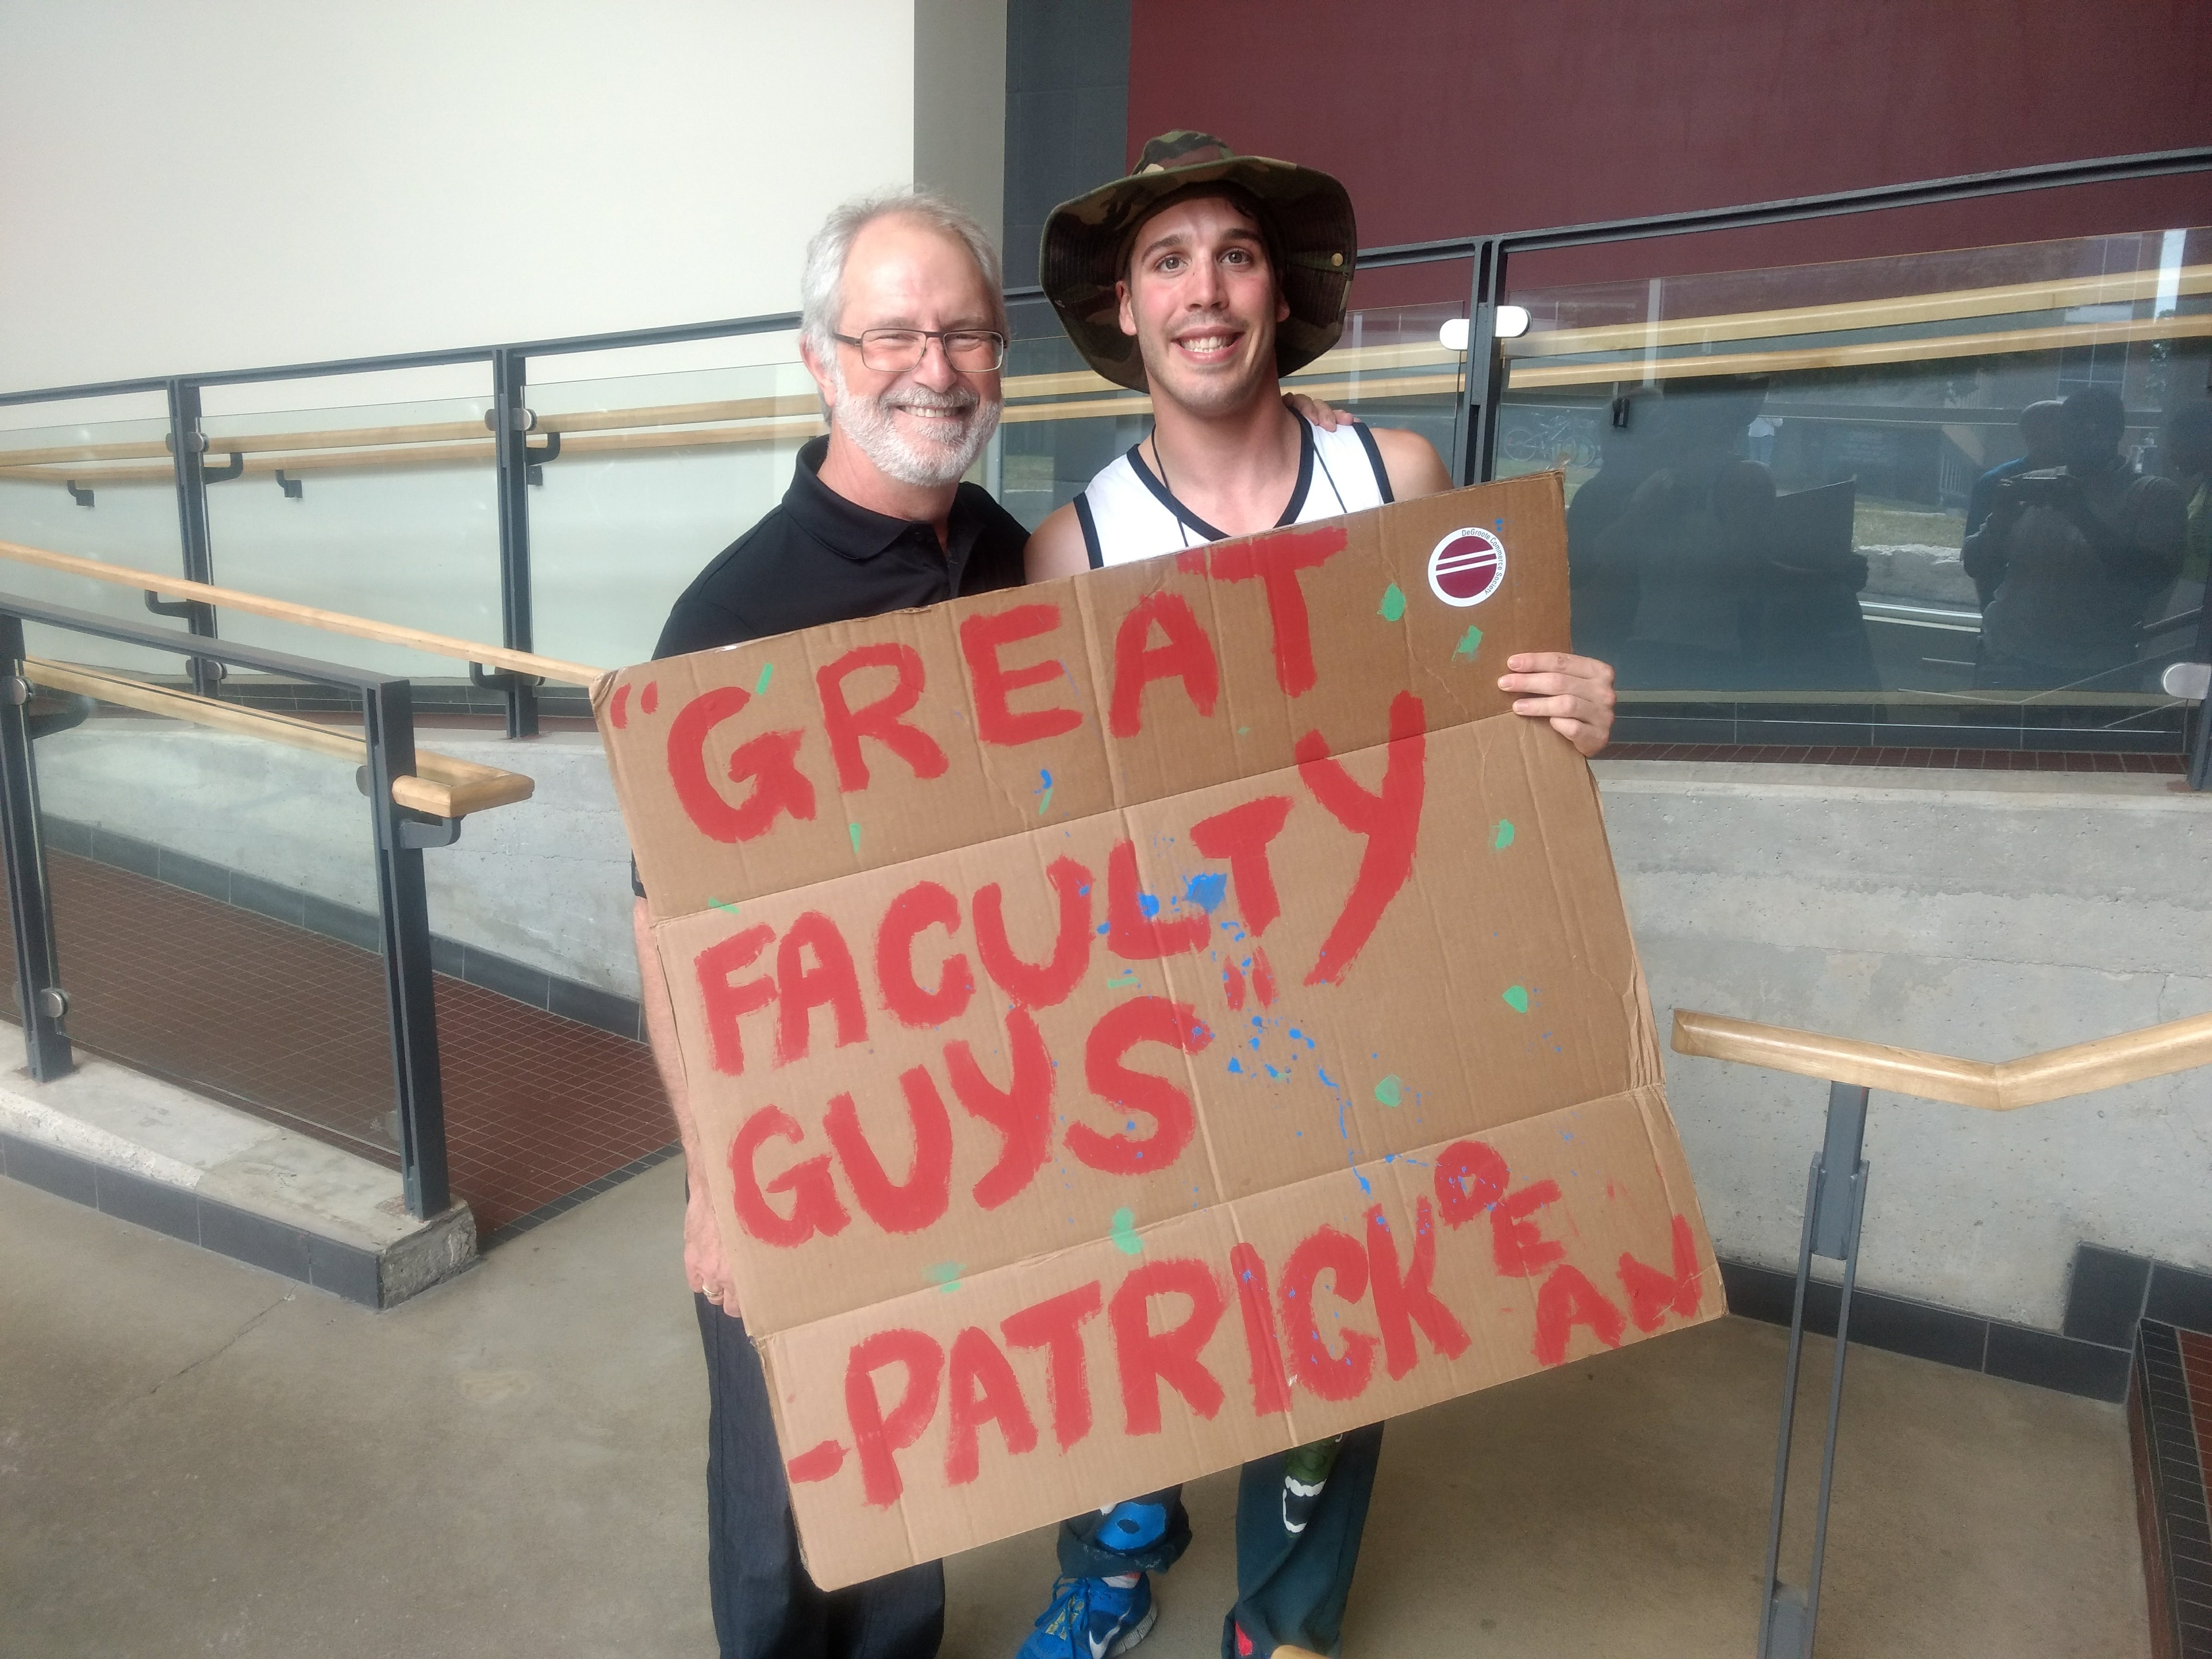 "Kevin pictured with McMaster President and Vice-Chancellor Dr. Patrick Deane holding a sign that says "" ""Great faculty guys,"" Patrick Deane"